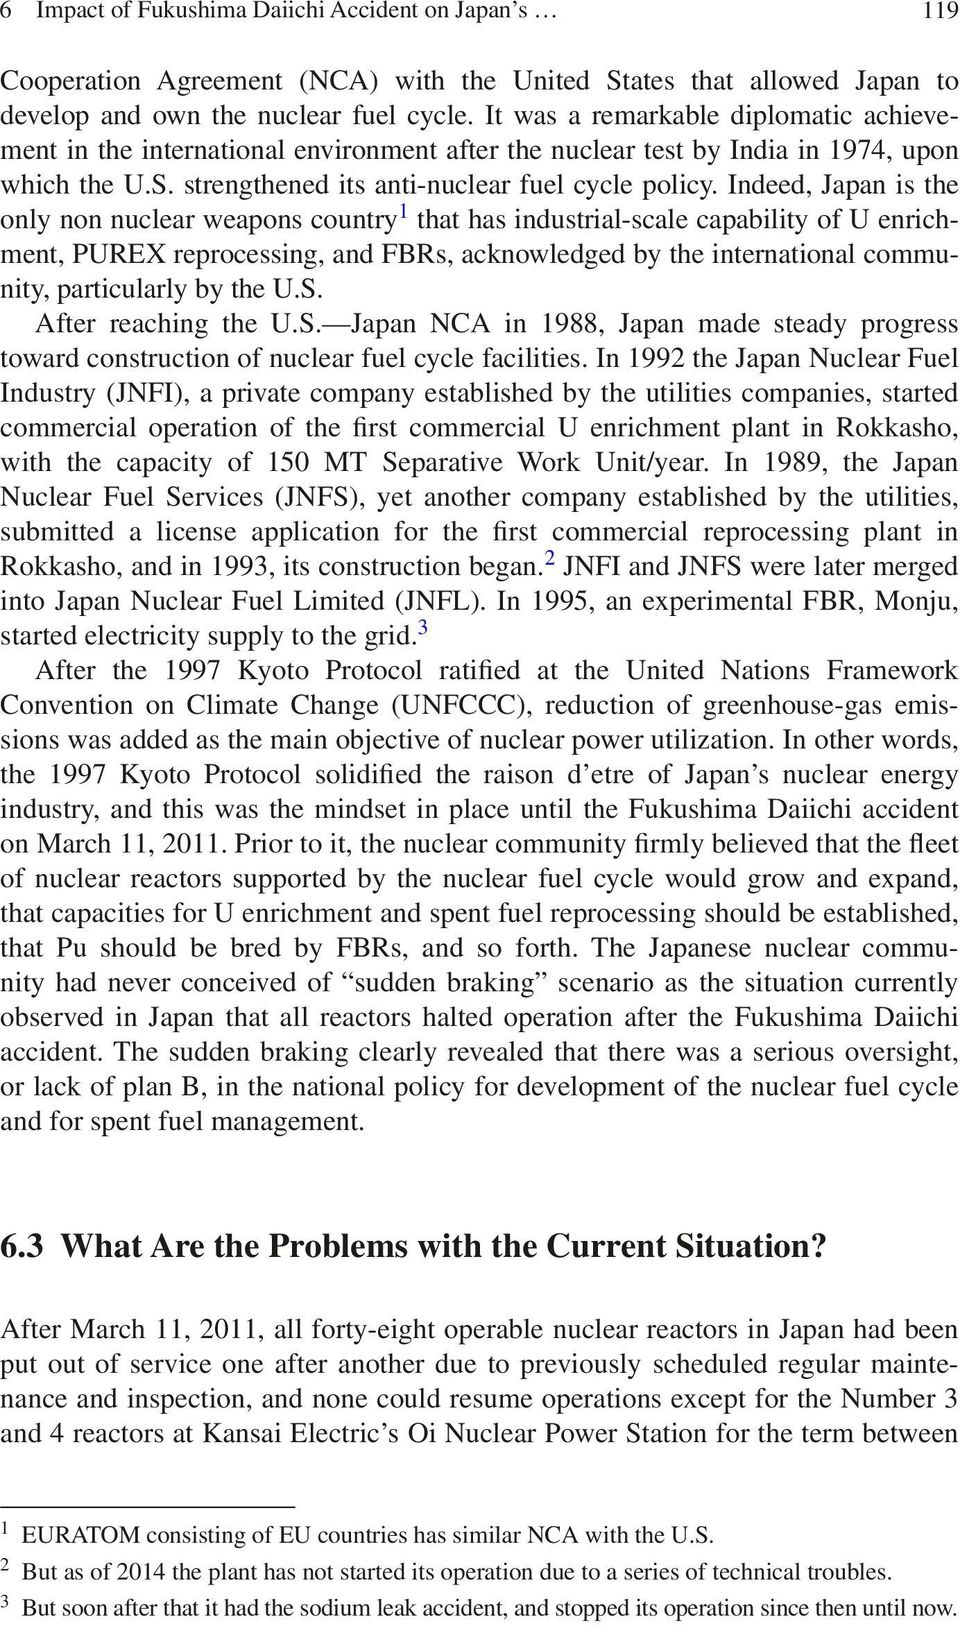 Indeed, Japan is the only non nuclear weapons country 1 that has industrial-scale capability of U enrichment, PUREX reprocessing, and FBRs, acknowledged by the international community, particularly